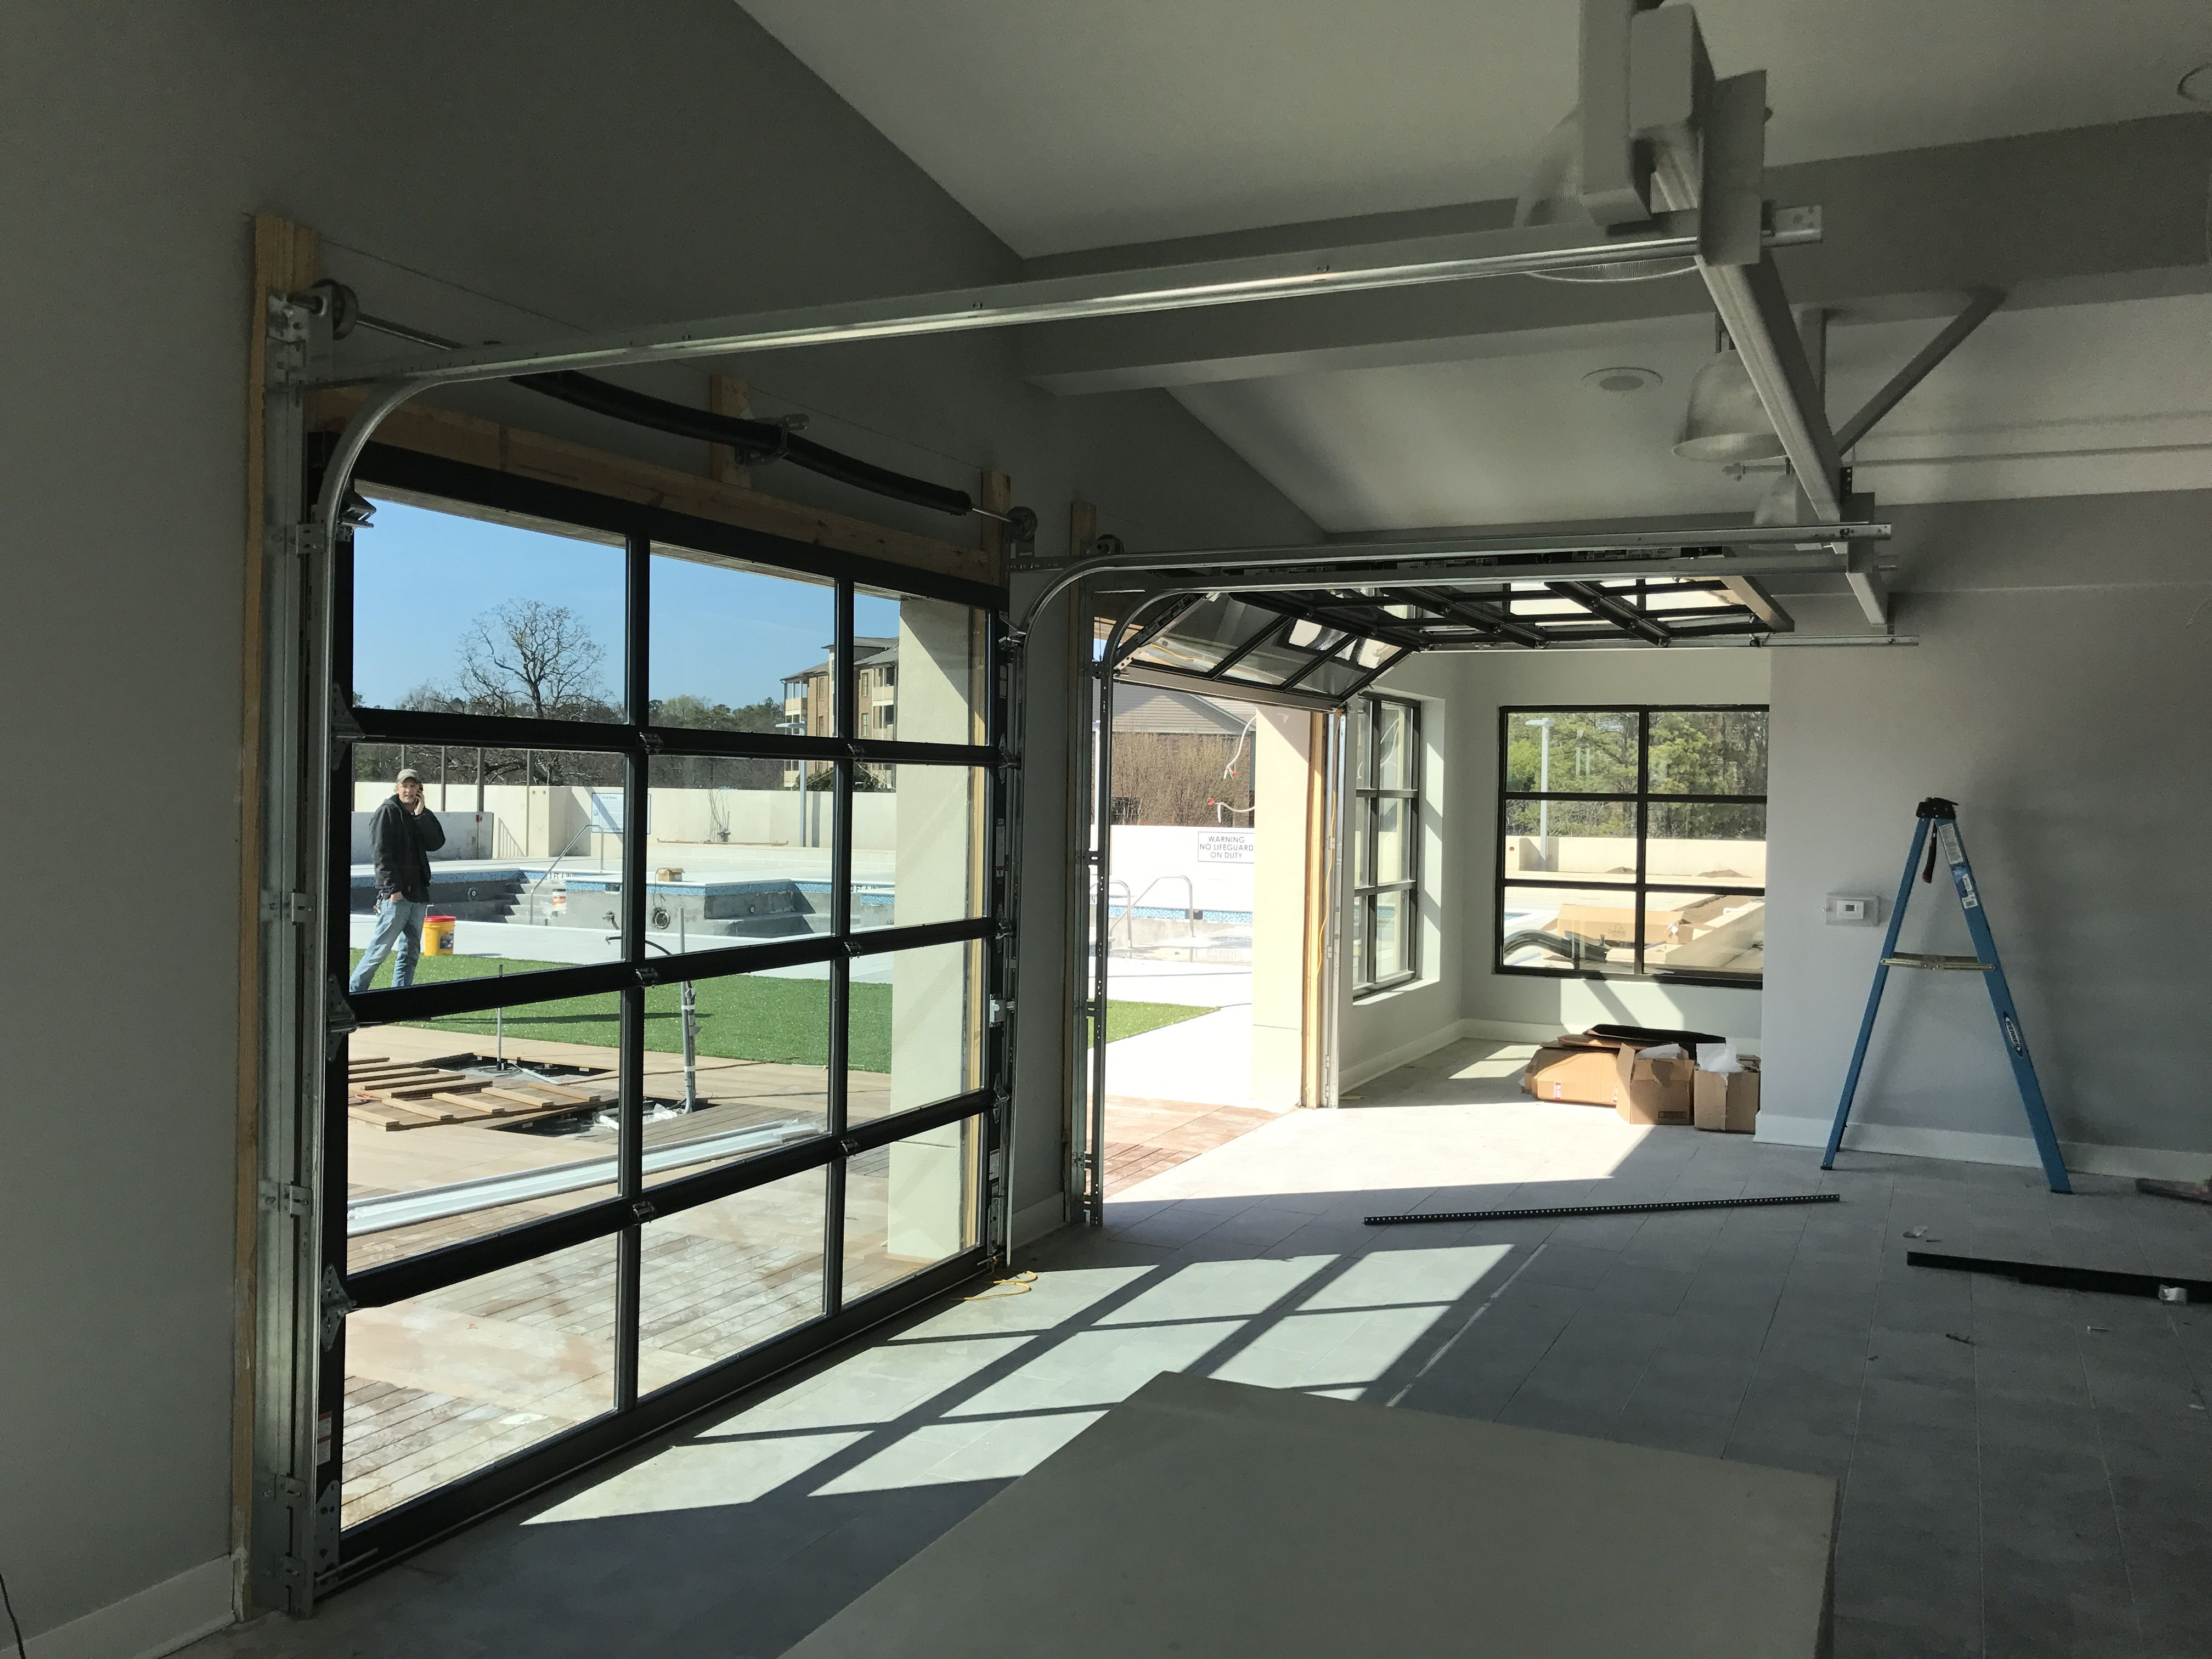 Full view glass garage door separating game room from